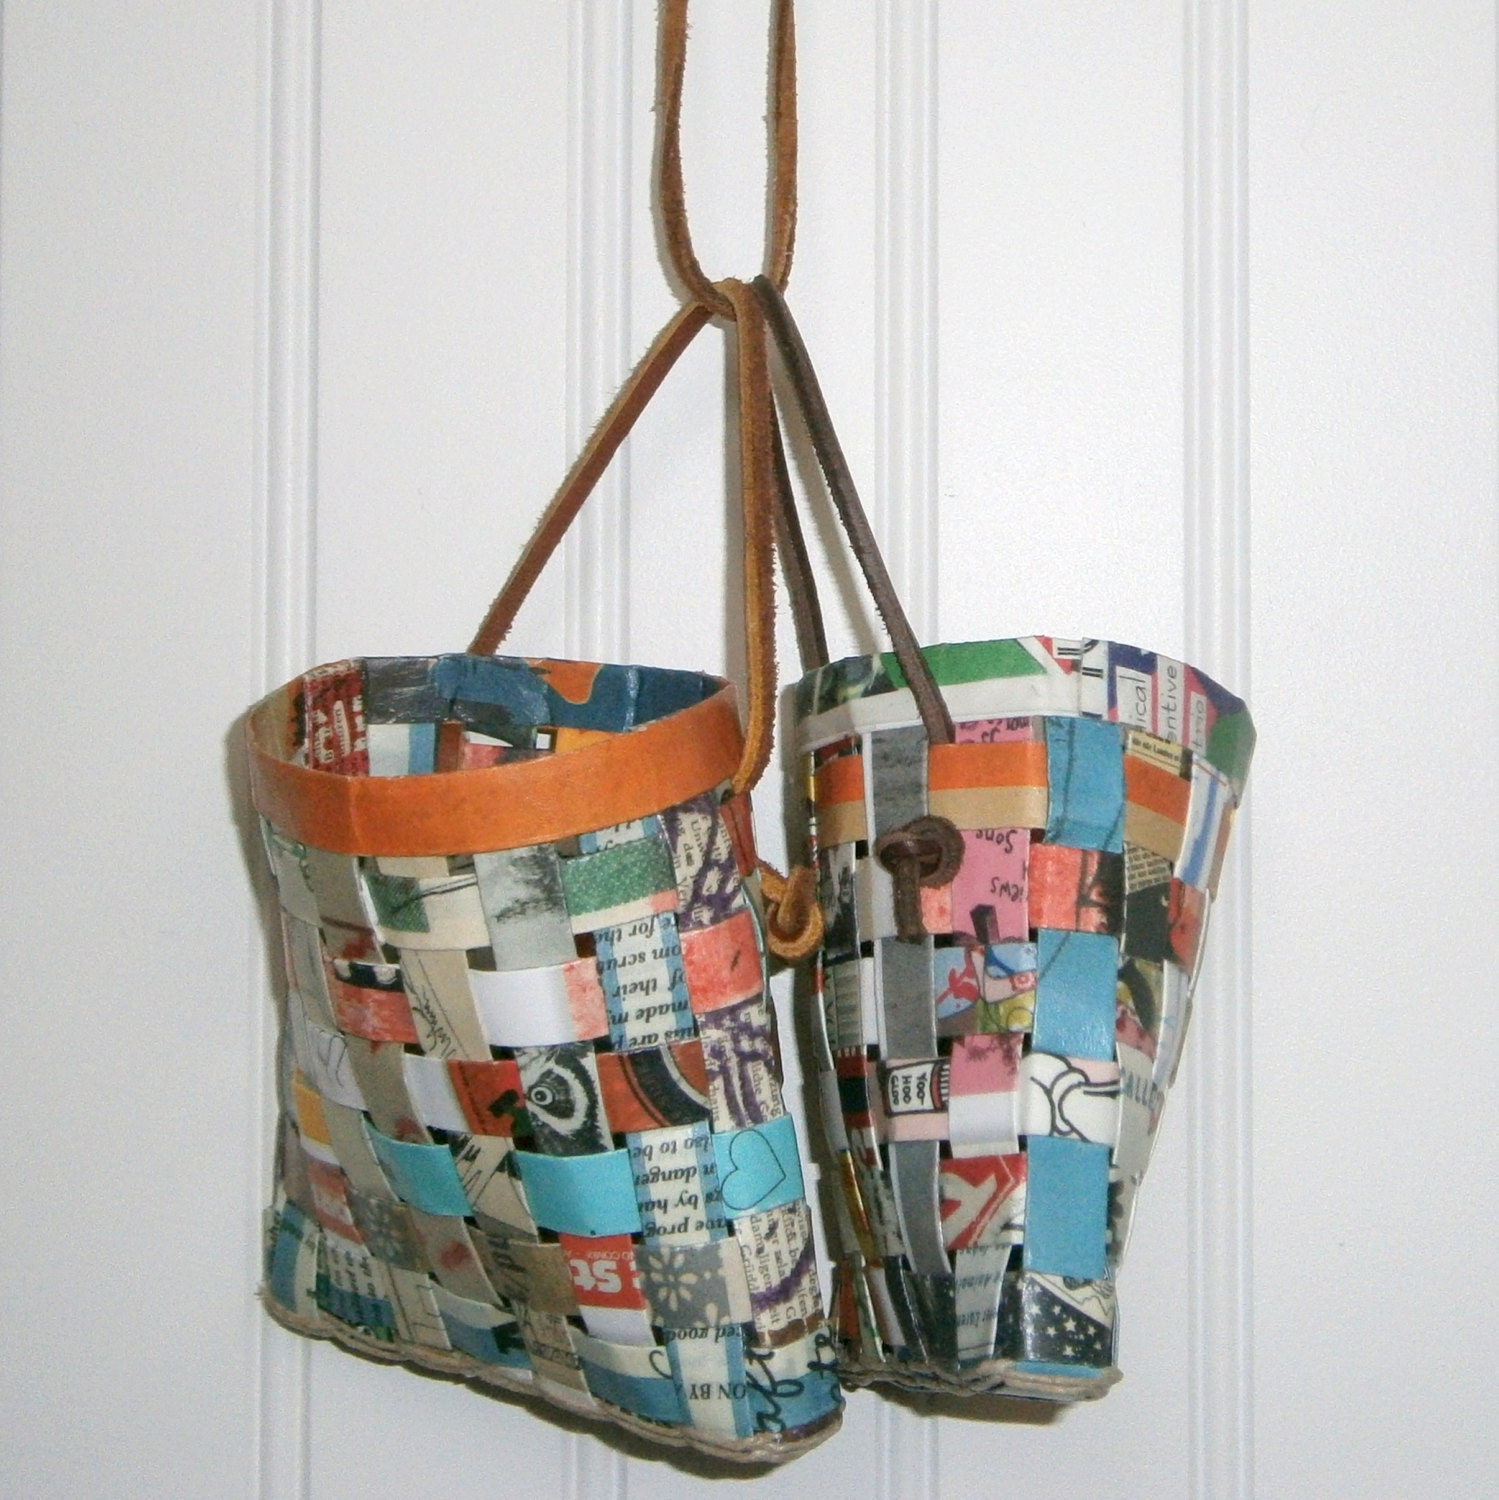 Handmade Basket Paper : Paper basket woven with recycled fanzines handmade